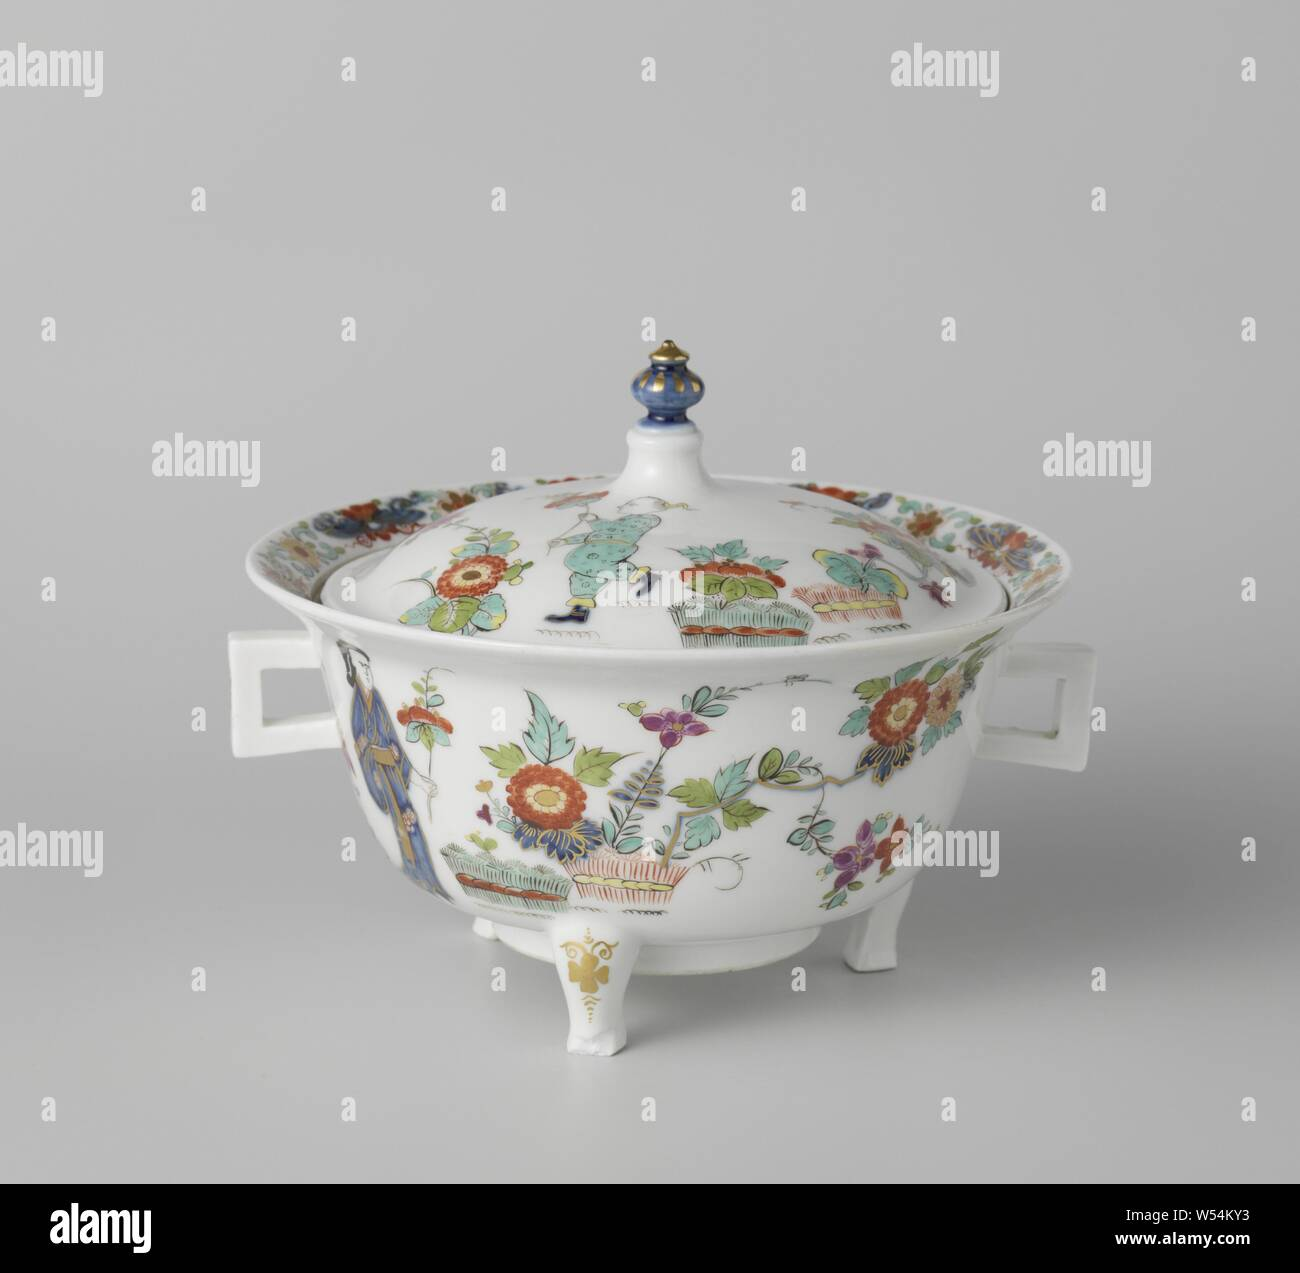 Terrine with lid, multicolored painted with a decor after Japanese